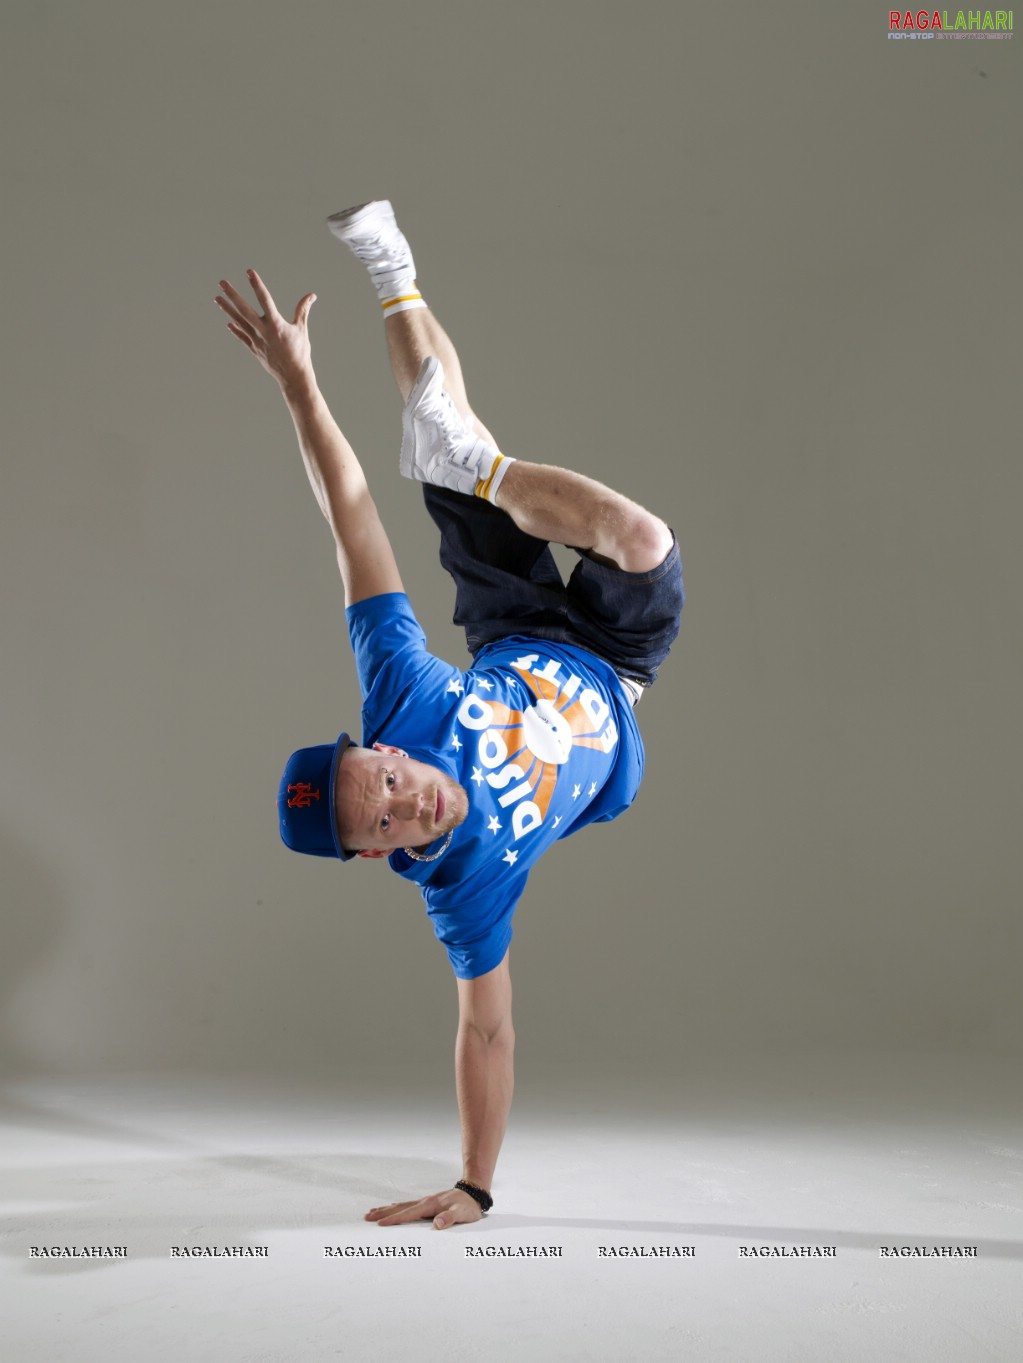 Wallpaper World: Amazing Street Dance pictures